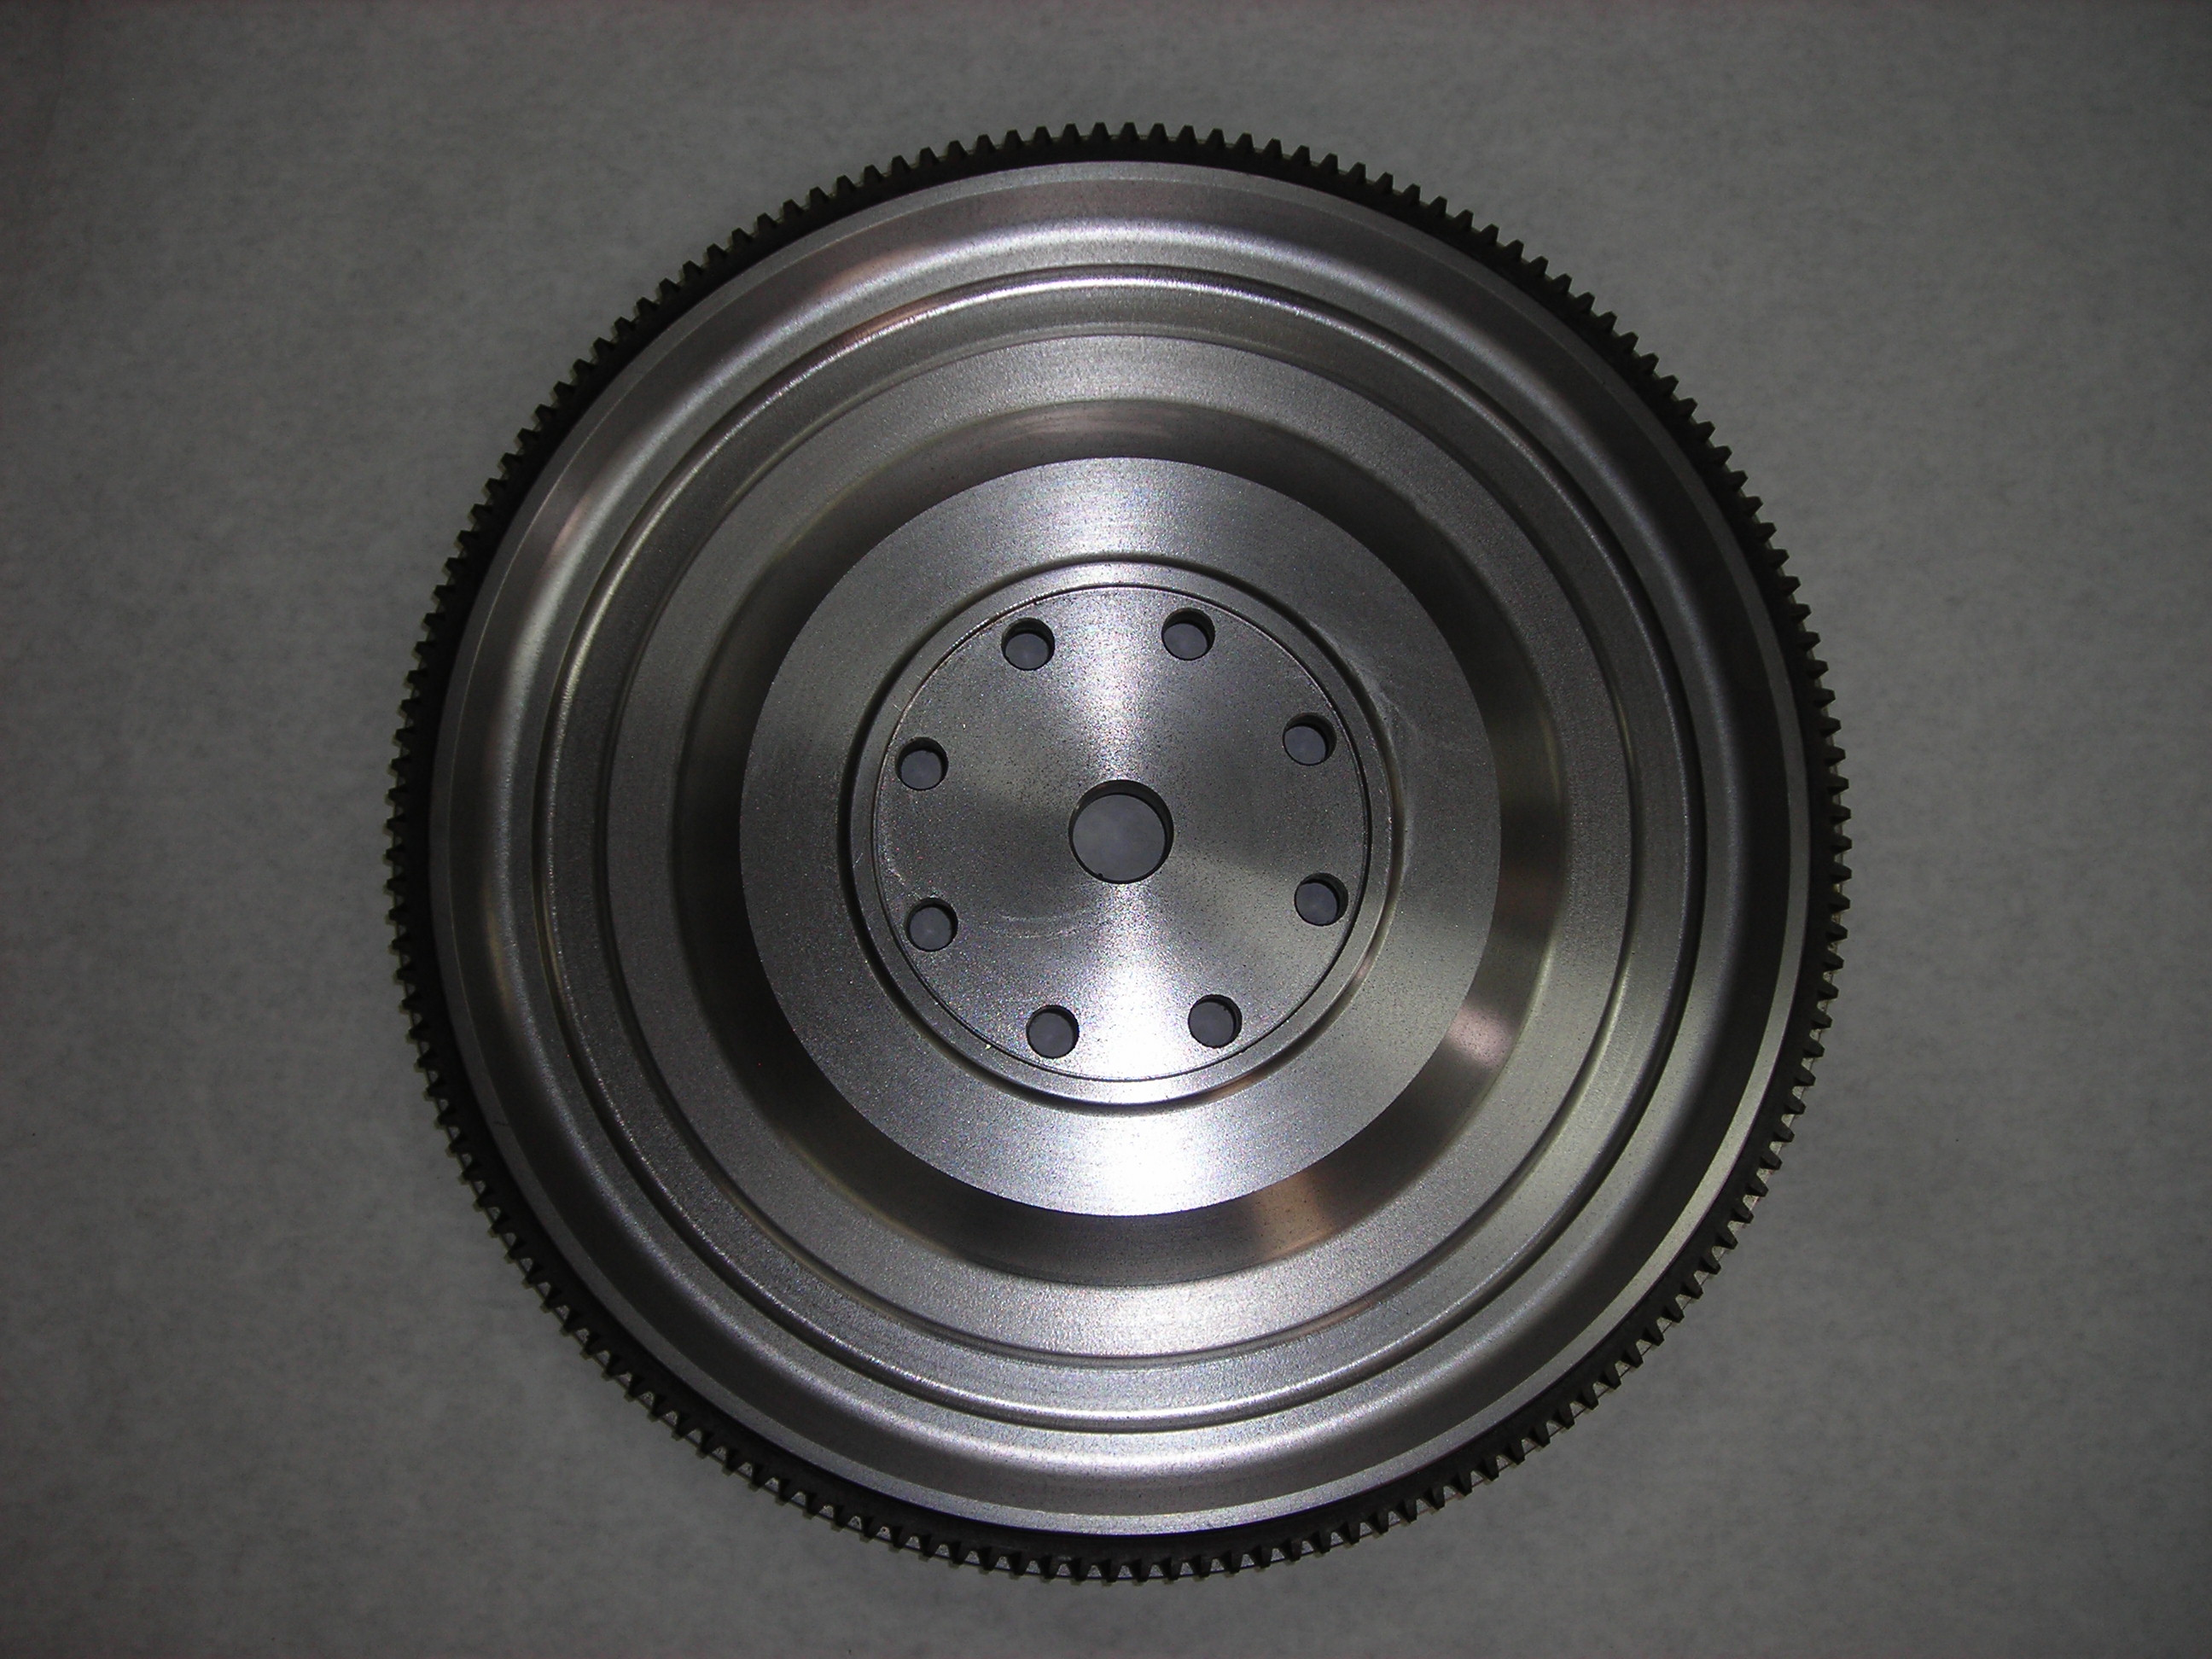 3968060 Cummins Flywheel Rear View